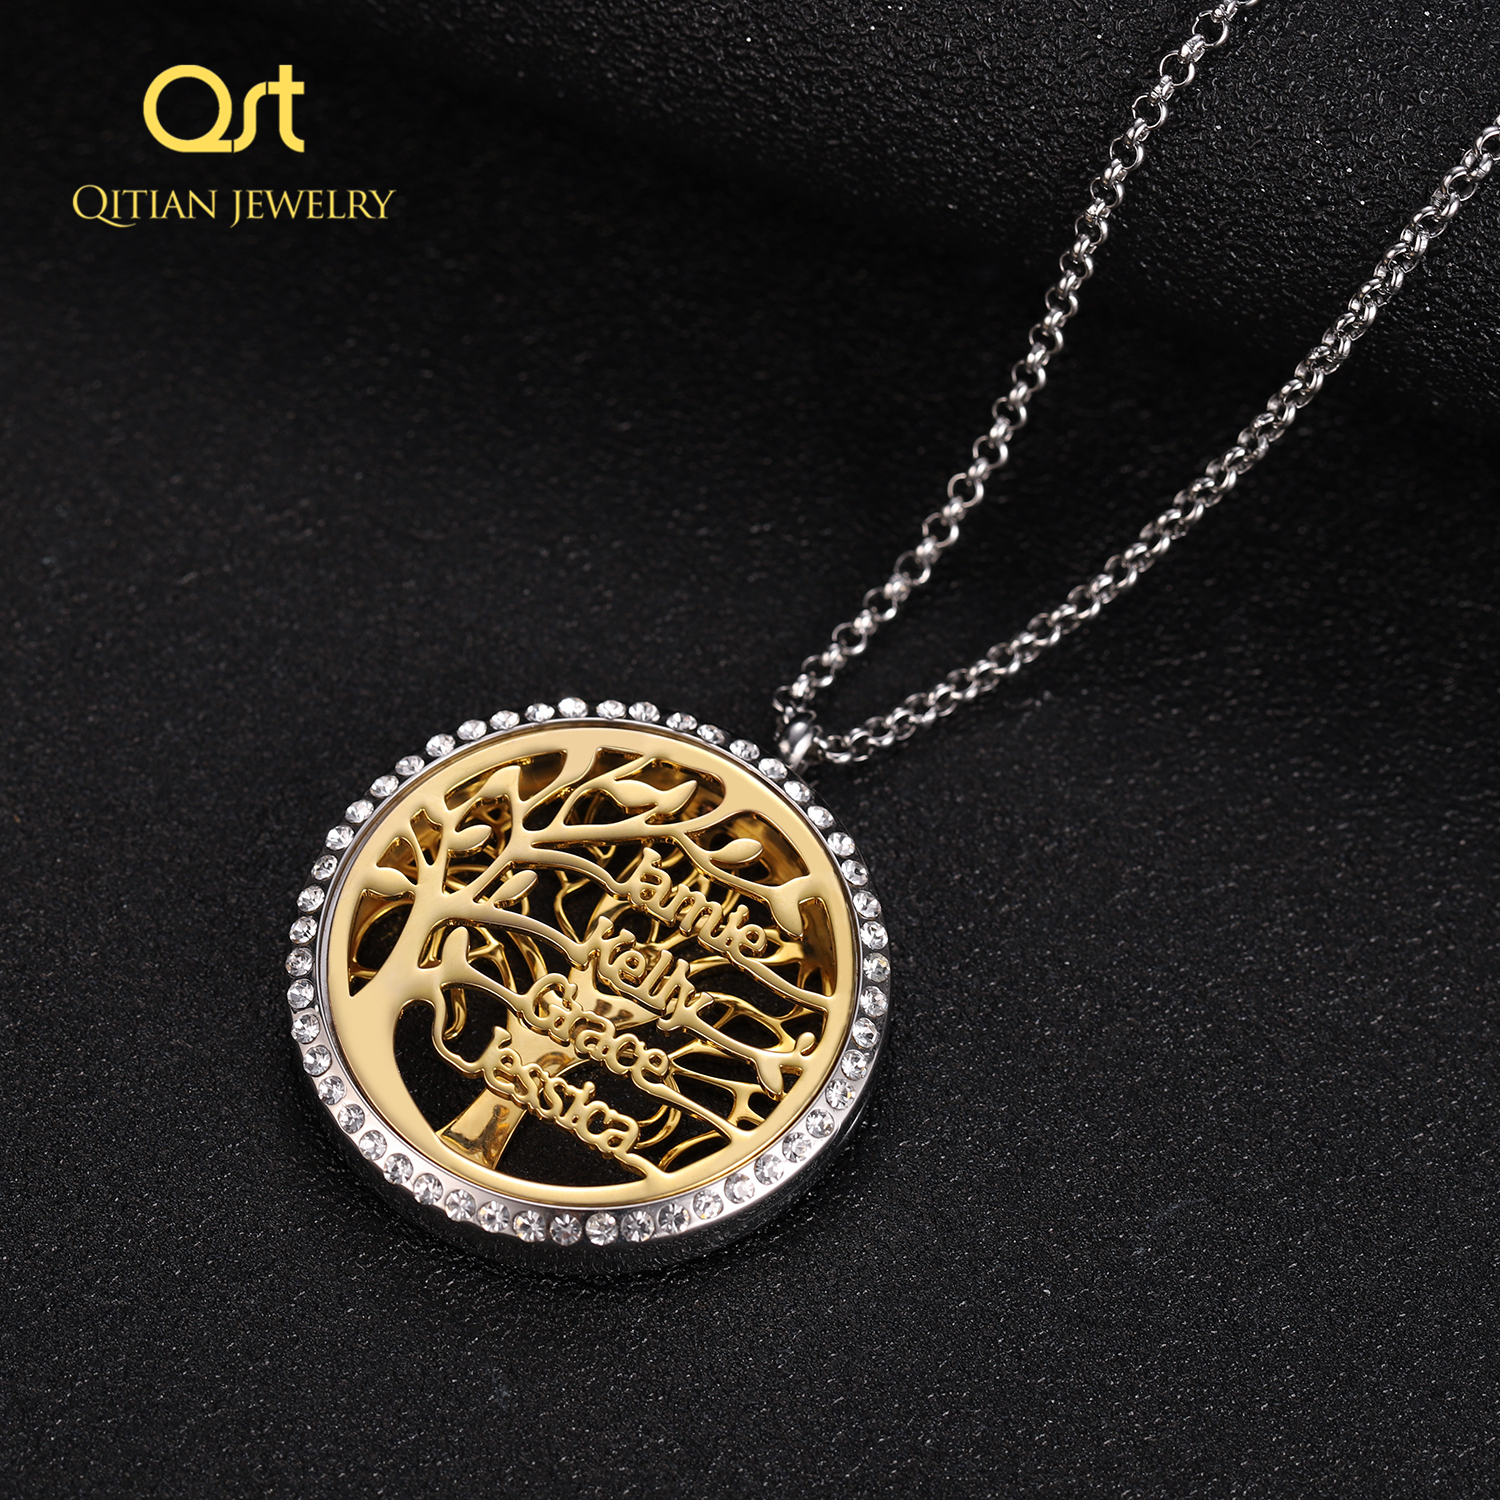 Personalized Statement Family Tree Necklace For Women custom Name Aromatherapy Stainless Steel Necklaces Men Jewelry bijoux Gift 1